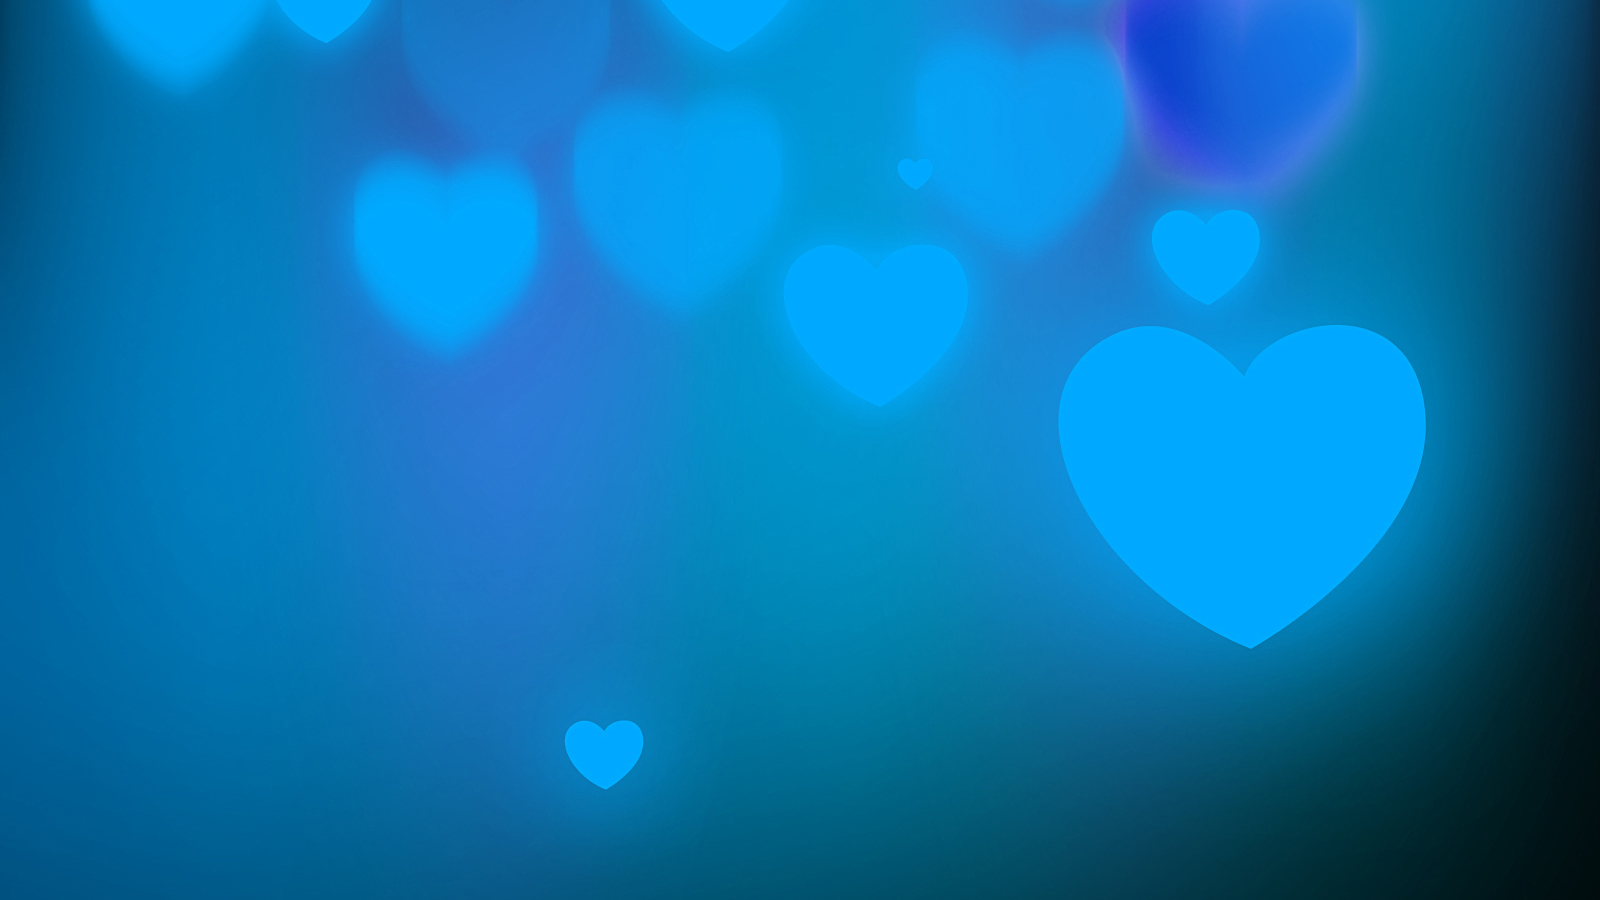 Blue Background with abstract hearts HD Background For Google Slides and PowerPoint Presentations